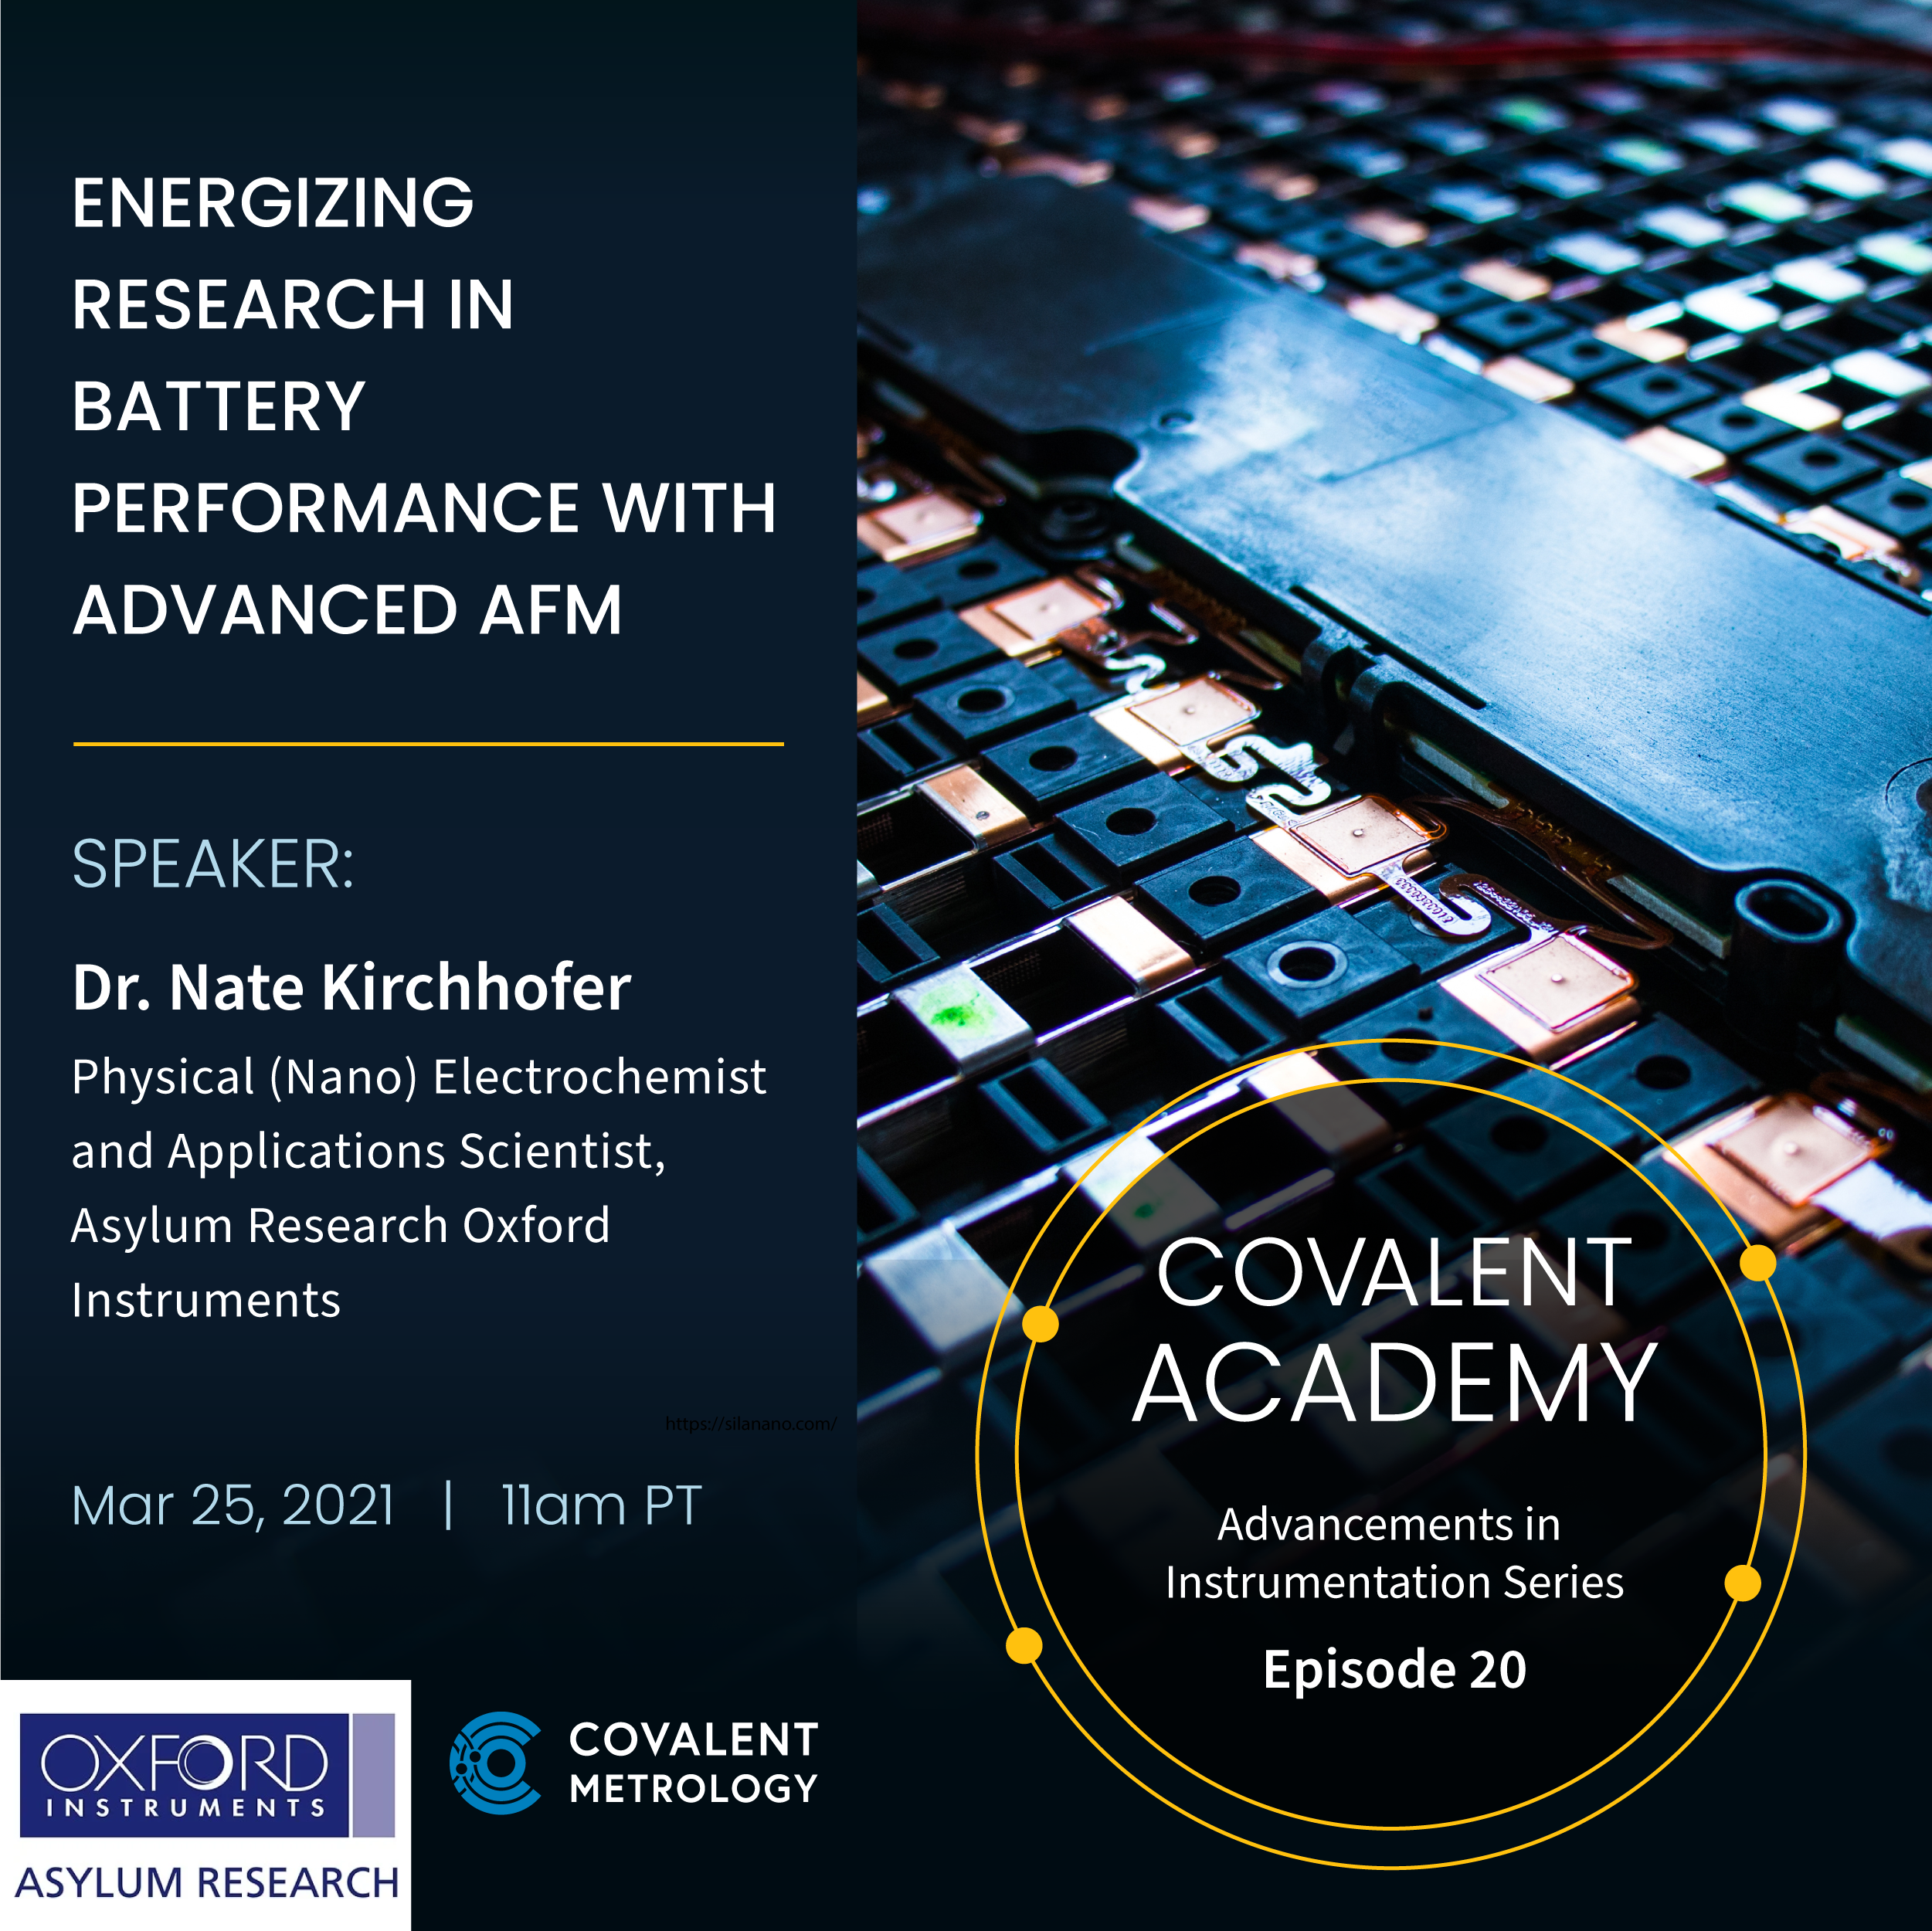 Energizing Research in Battery Performance with Advanced AFM